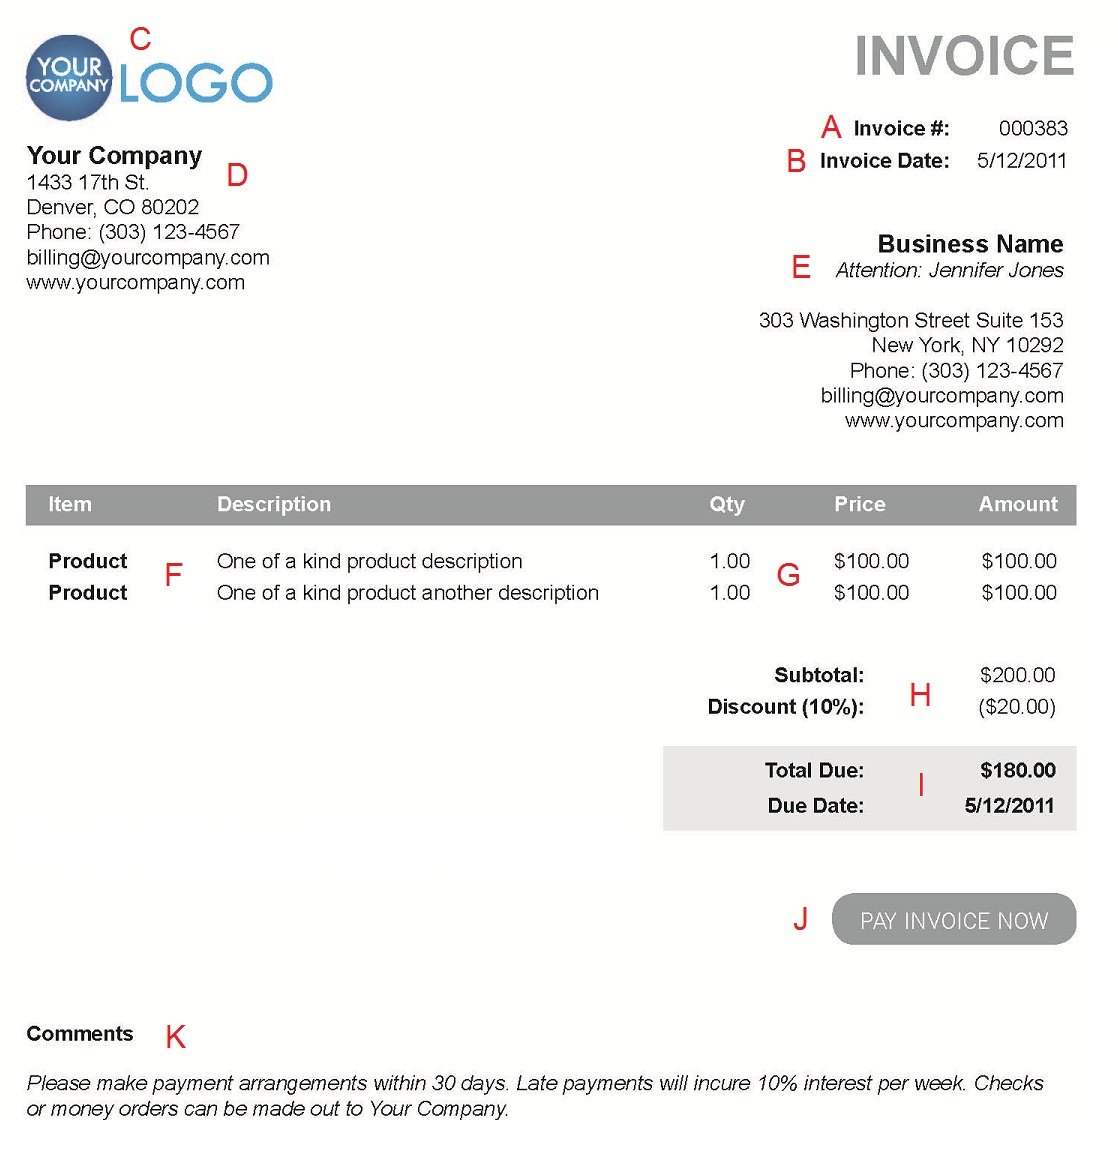 Angkajituus  Unique The  Different Sections Of An Electronic Payment Invoice With Excellent A  With Astonishing Sale Receipt For Used Car Also Receipt Printer Ipad In Addition Tneb Receipt And What Are Depository Receipts As Well As Certified Mail Return Receipt Cost  Additionally Online Lic Receipt From Paysimplecom With Angkajituus  Excellent The  Different Sections Of An Electronic Payment Invoice With Astonishing A  And Unique Sale Receipt For Used Car Also Receipt Printer Ipad In Addition Tneb Receipt From Paysimplecom